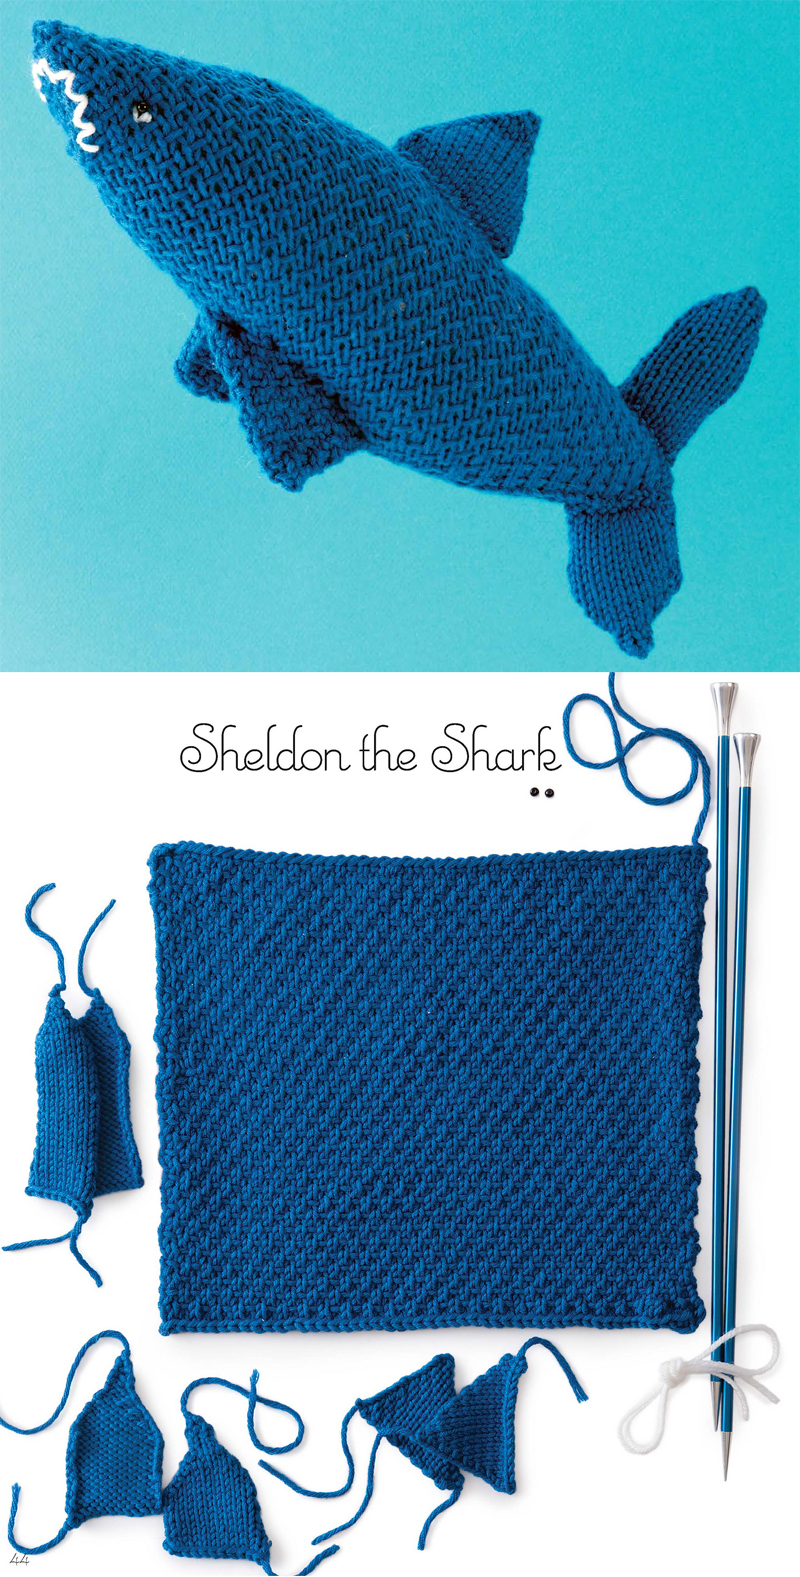 Knitting Pattern for Shark Toy Knit From a Square